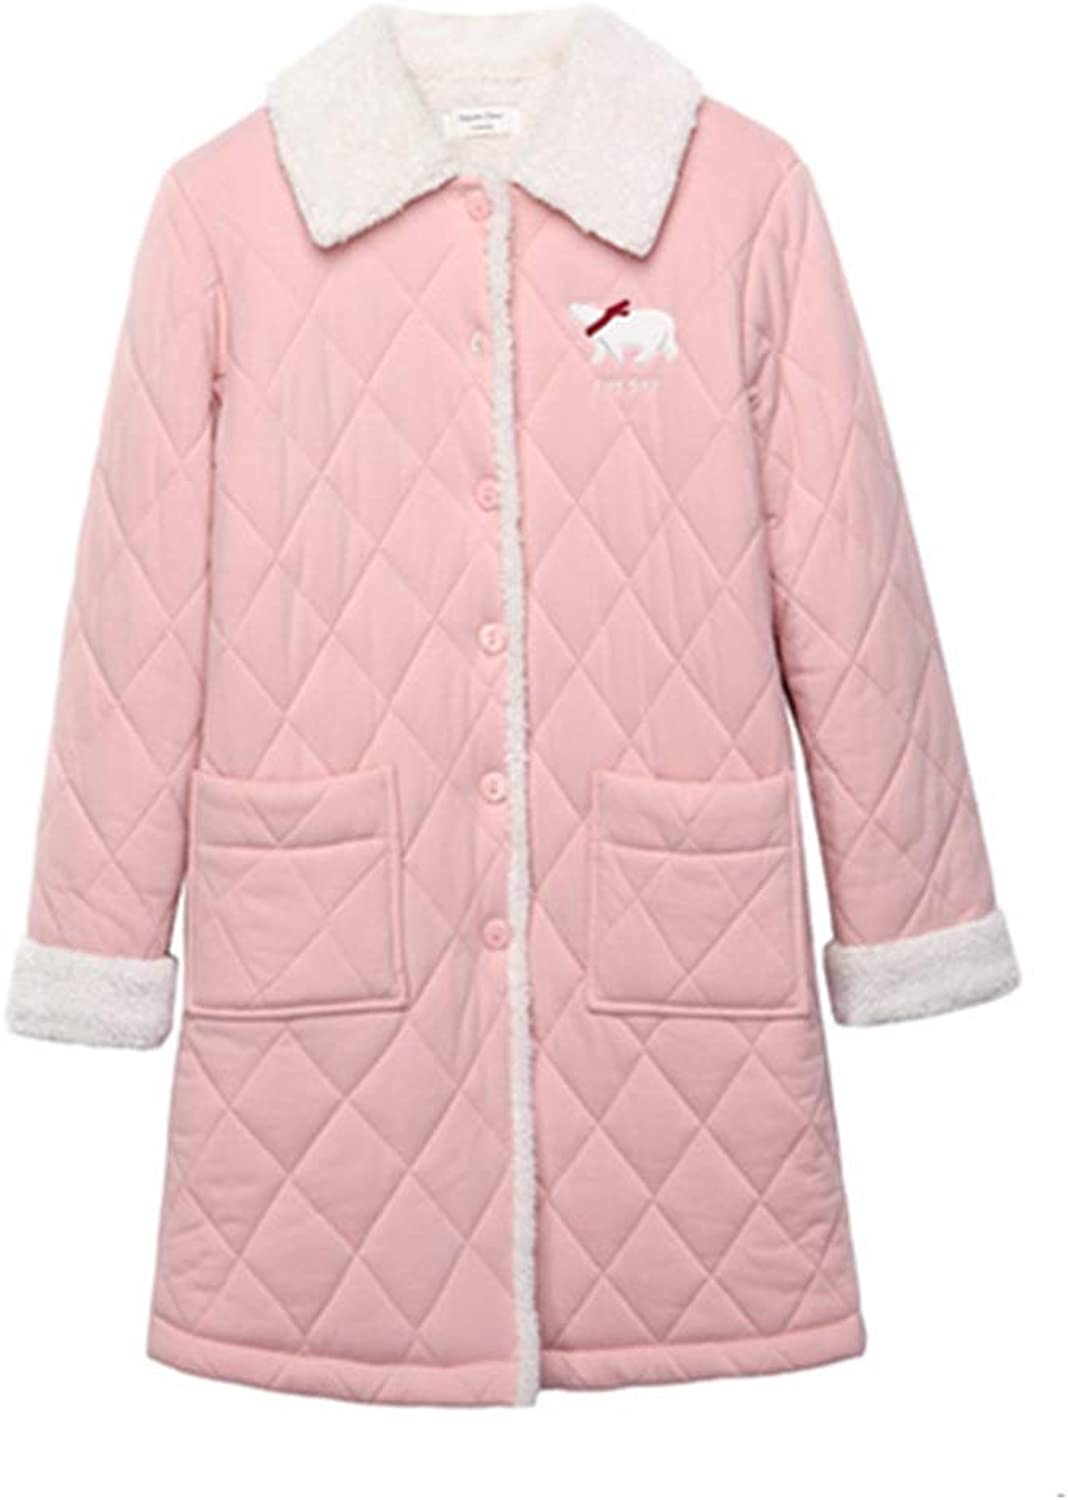 NAN Liang Winter Pajamas, Cotton LongSleeved Lapel Ladies Nightgown, Cartoon Thick ThreeLayer Quilted Home Service bathrobe Soft (Size   L)